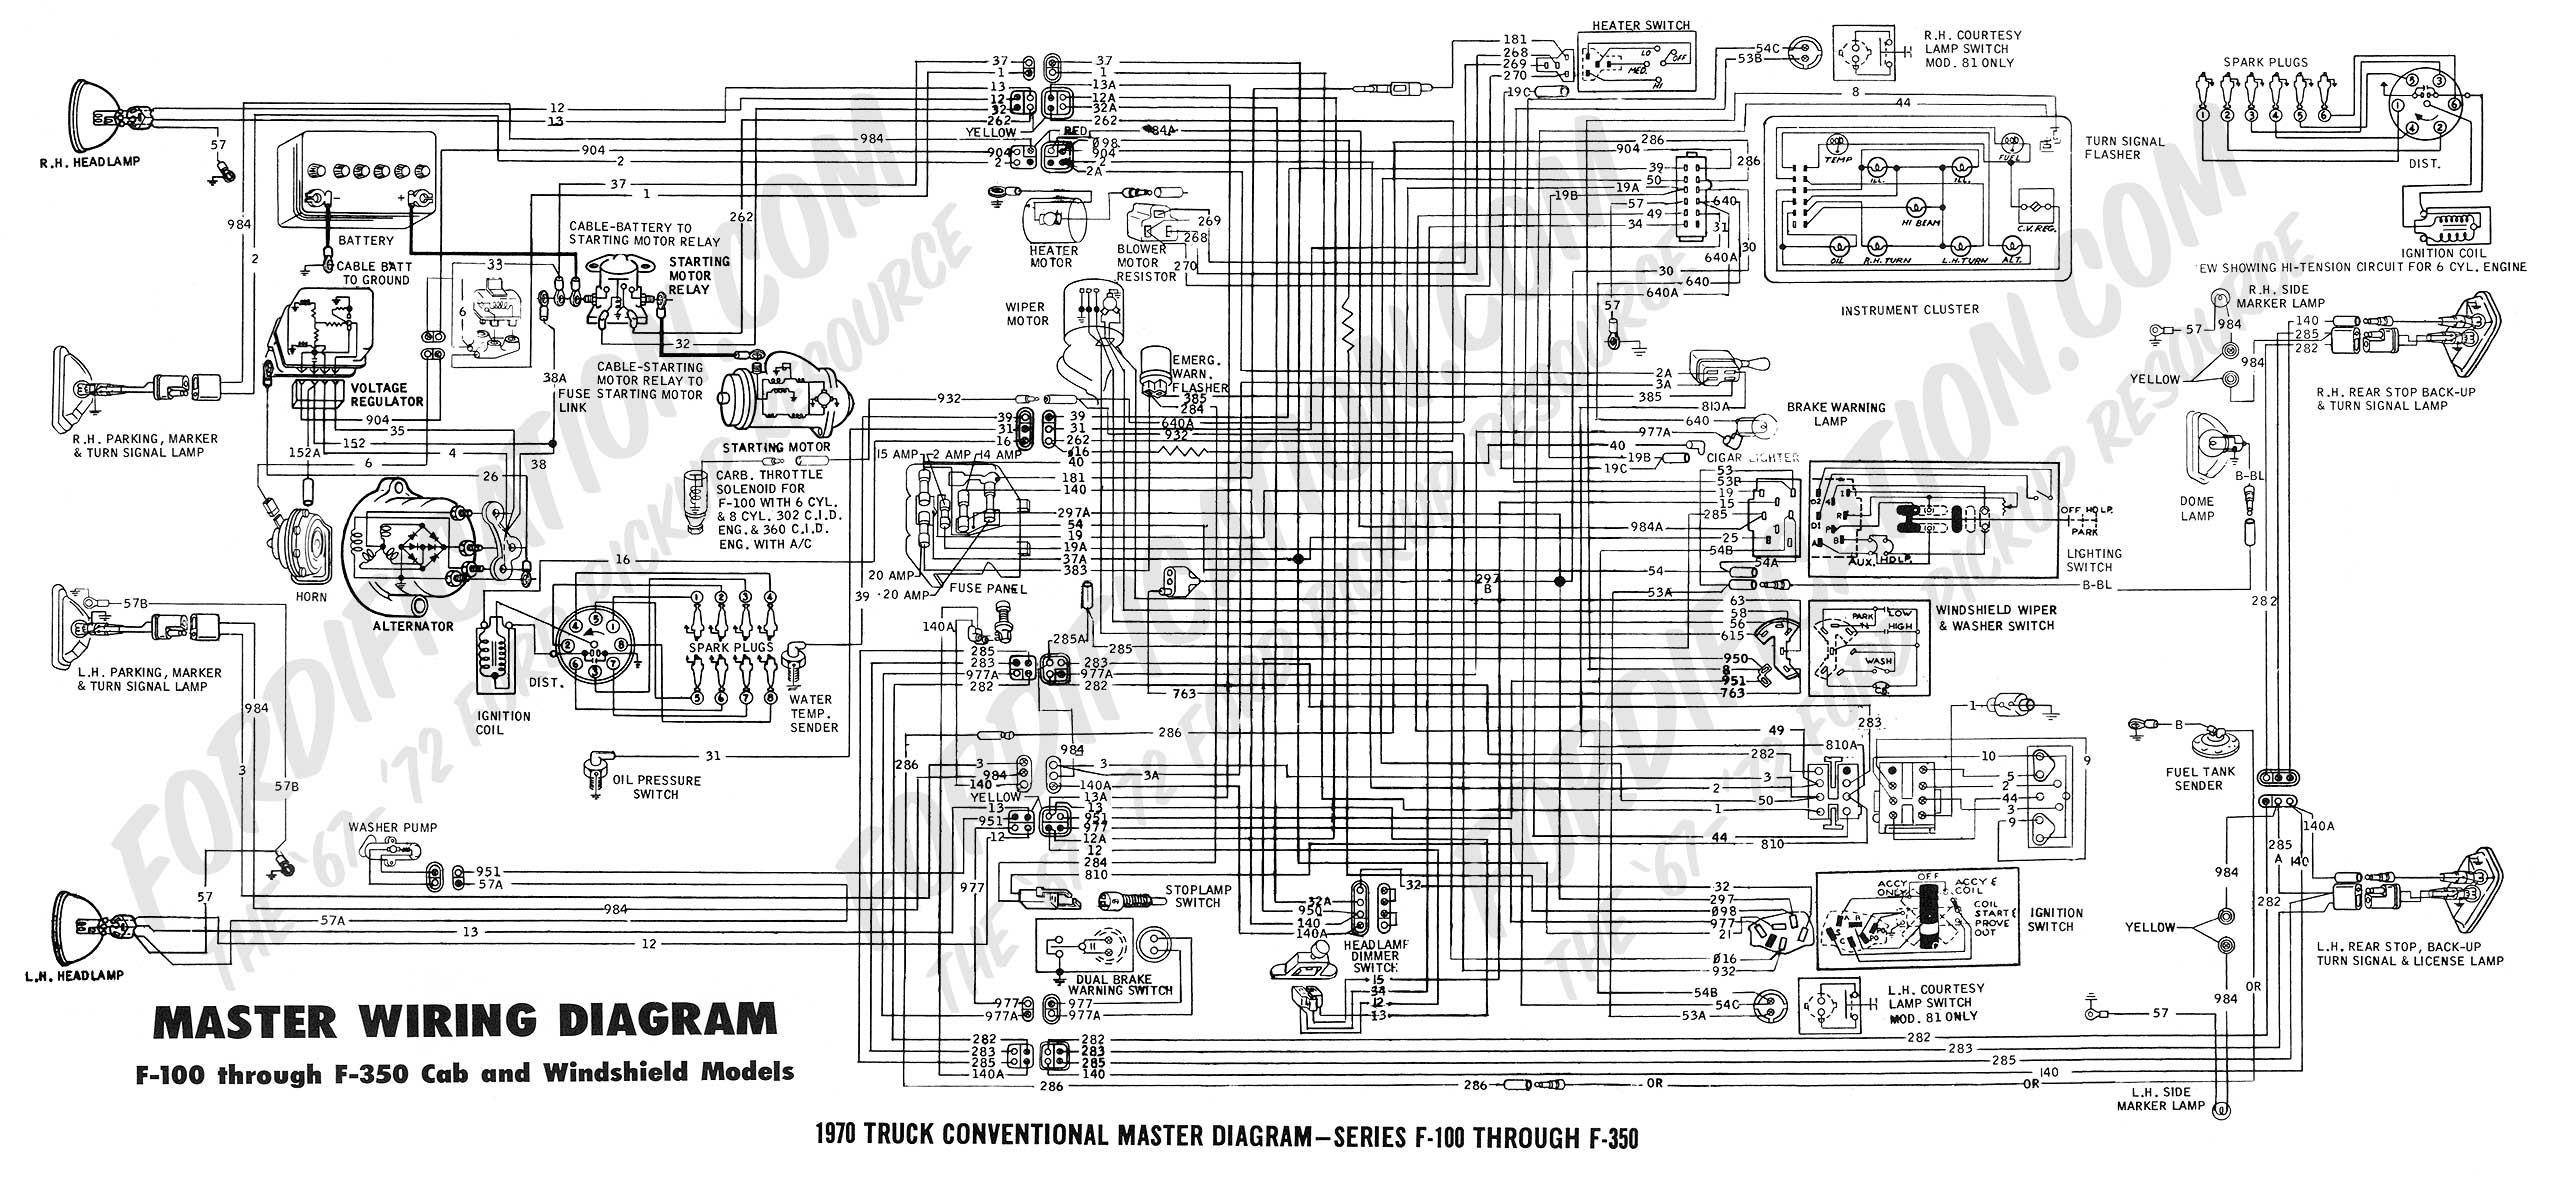 wiring diagram 70_master f450 wiring diagram pto wiring diagram f450 \u2022 wiring diagrams j 2012 ford f150 wiring diagram at crackthecode.co